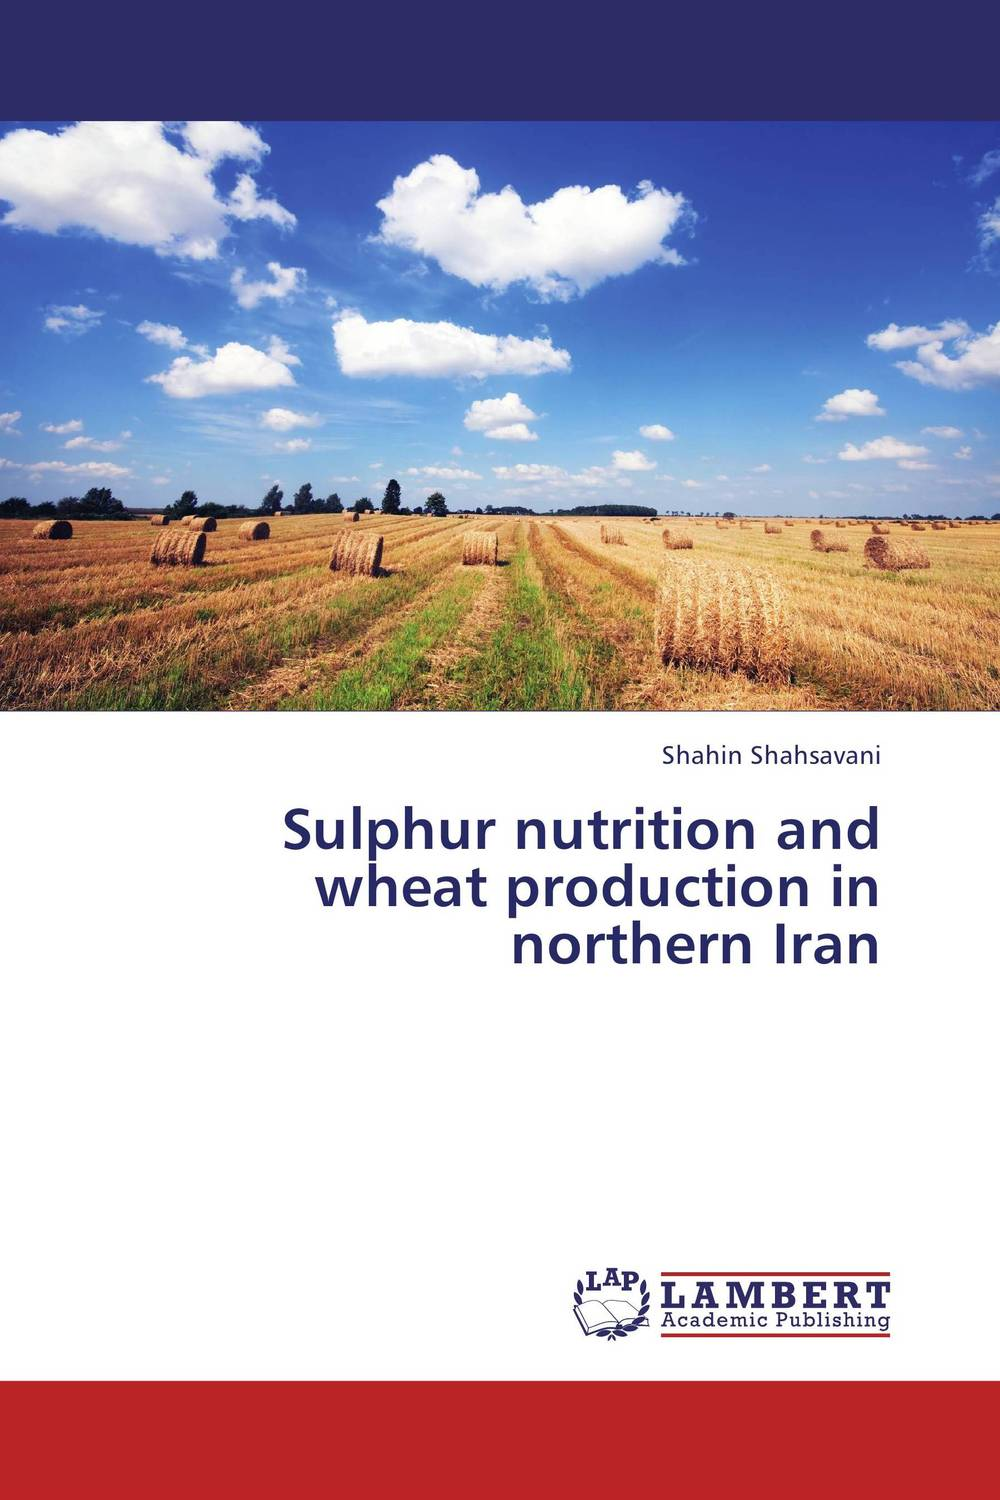 Sulphur nutrition and wheat production in northern Iran purnima sareen sundeep kumar and rakesh singh molecular and pathological characterization of slow rusting in wheat